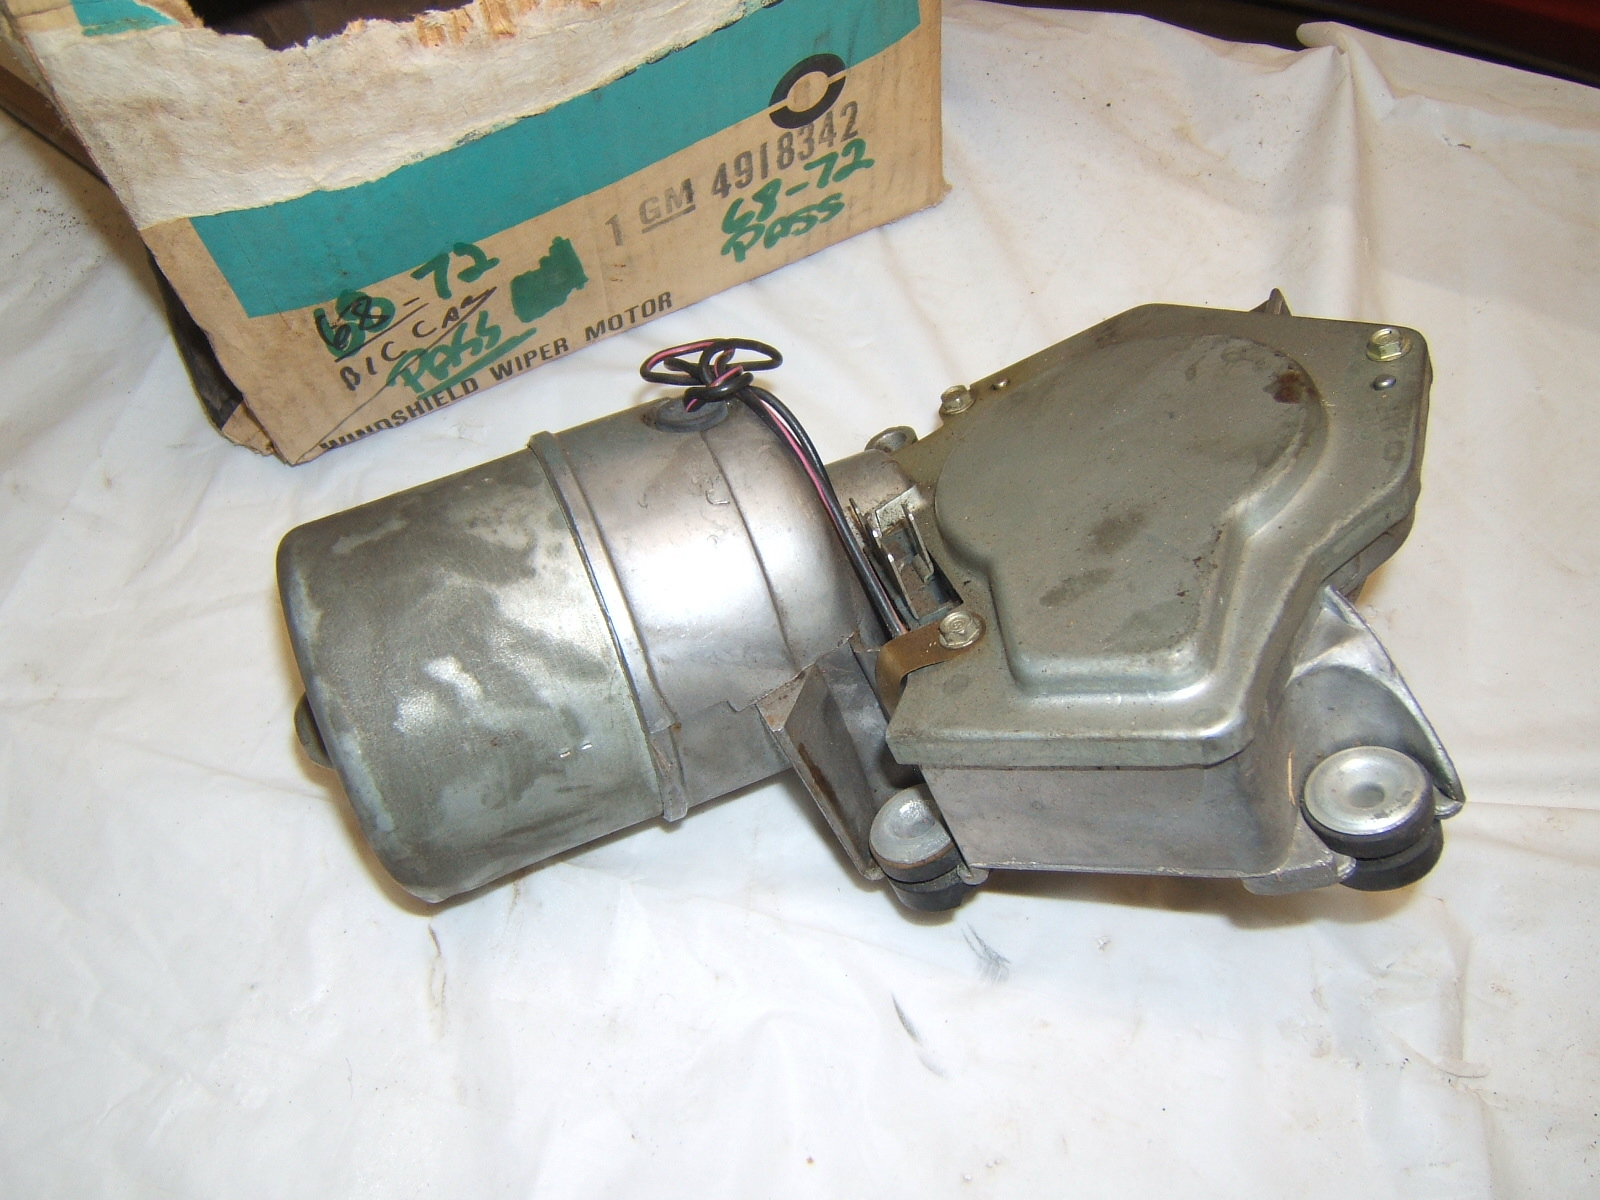 1968 1969 1970 1971 1972 1973 Chevrolet Pontiac Cadillac windshield wiper motor (A 4918342)